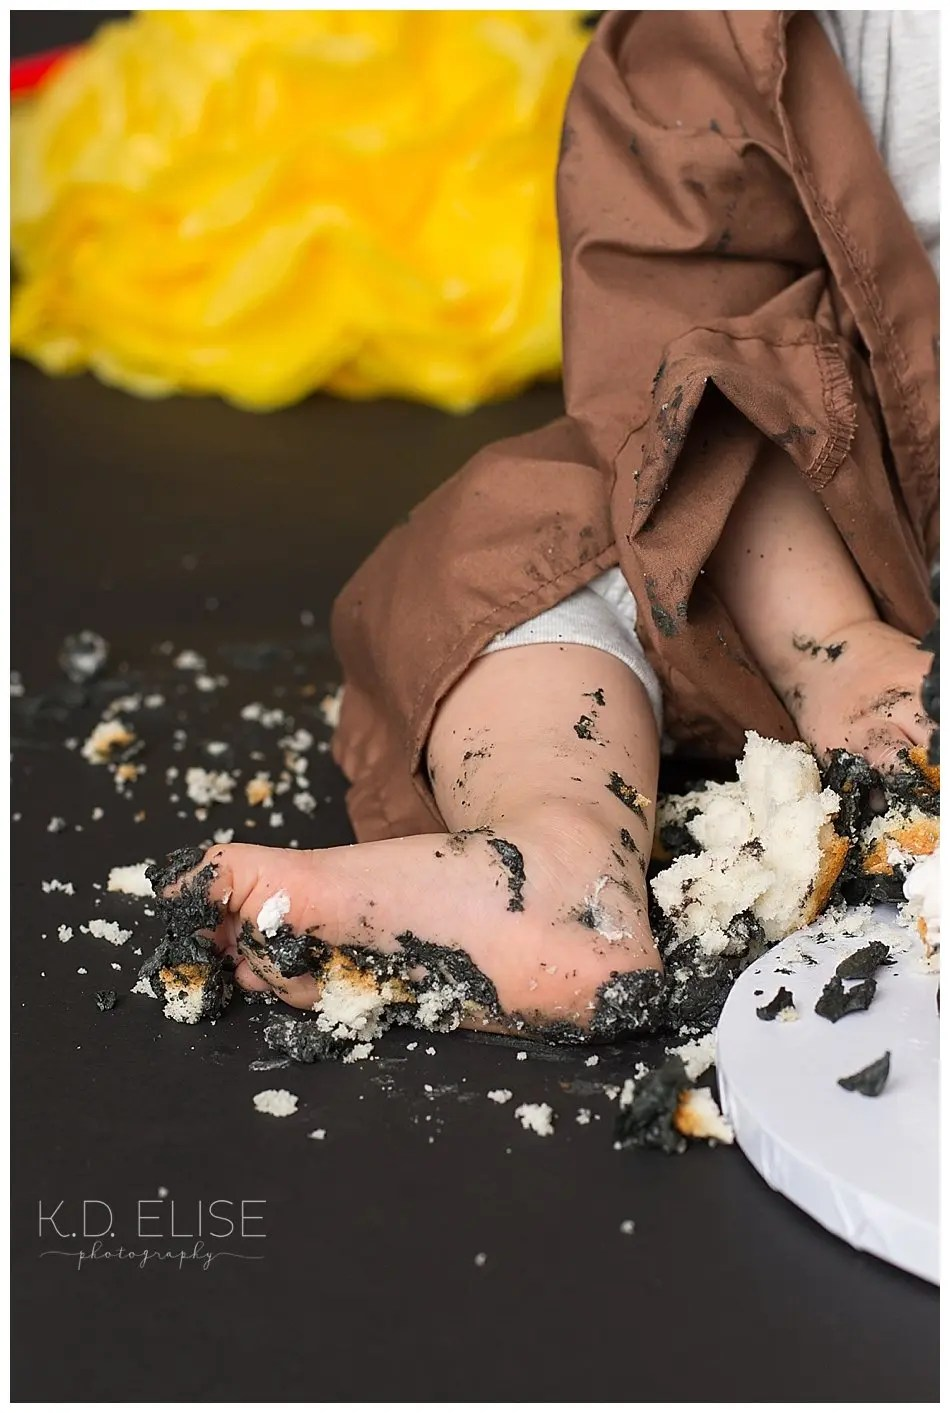 Close up photo of baby boy's cake covered feet during baby's first birthday cake smash.